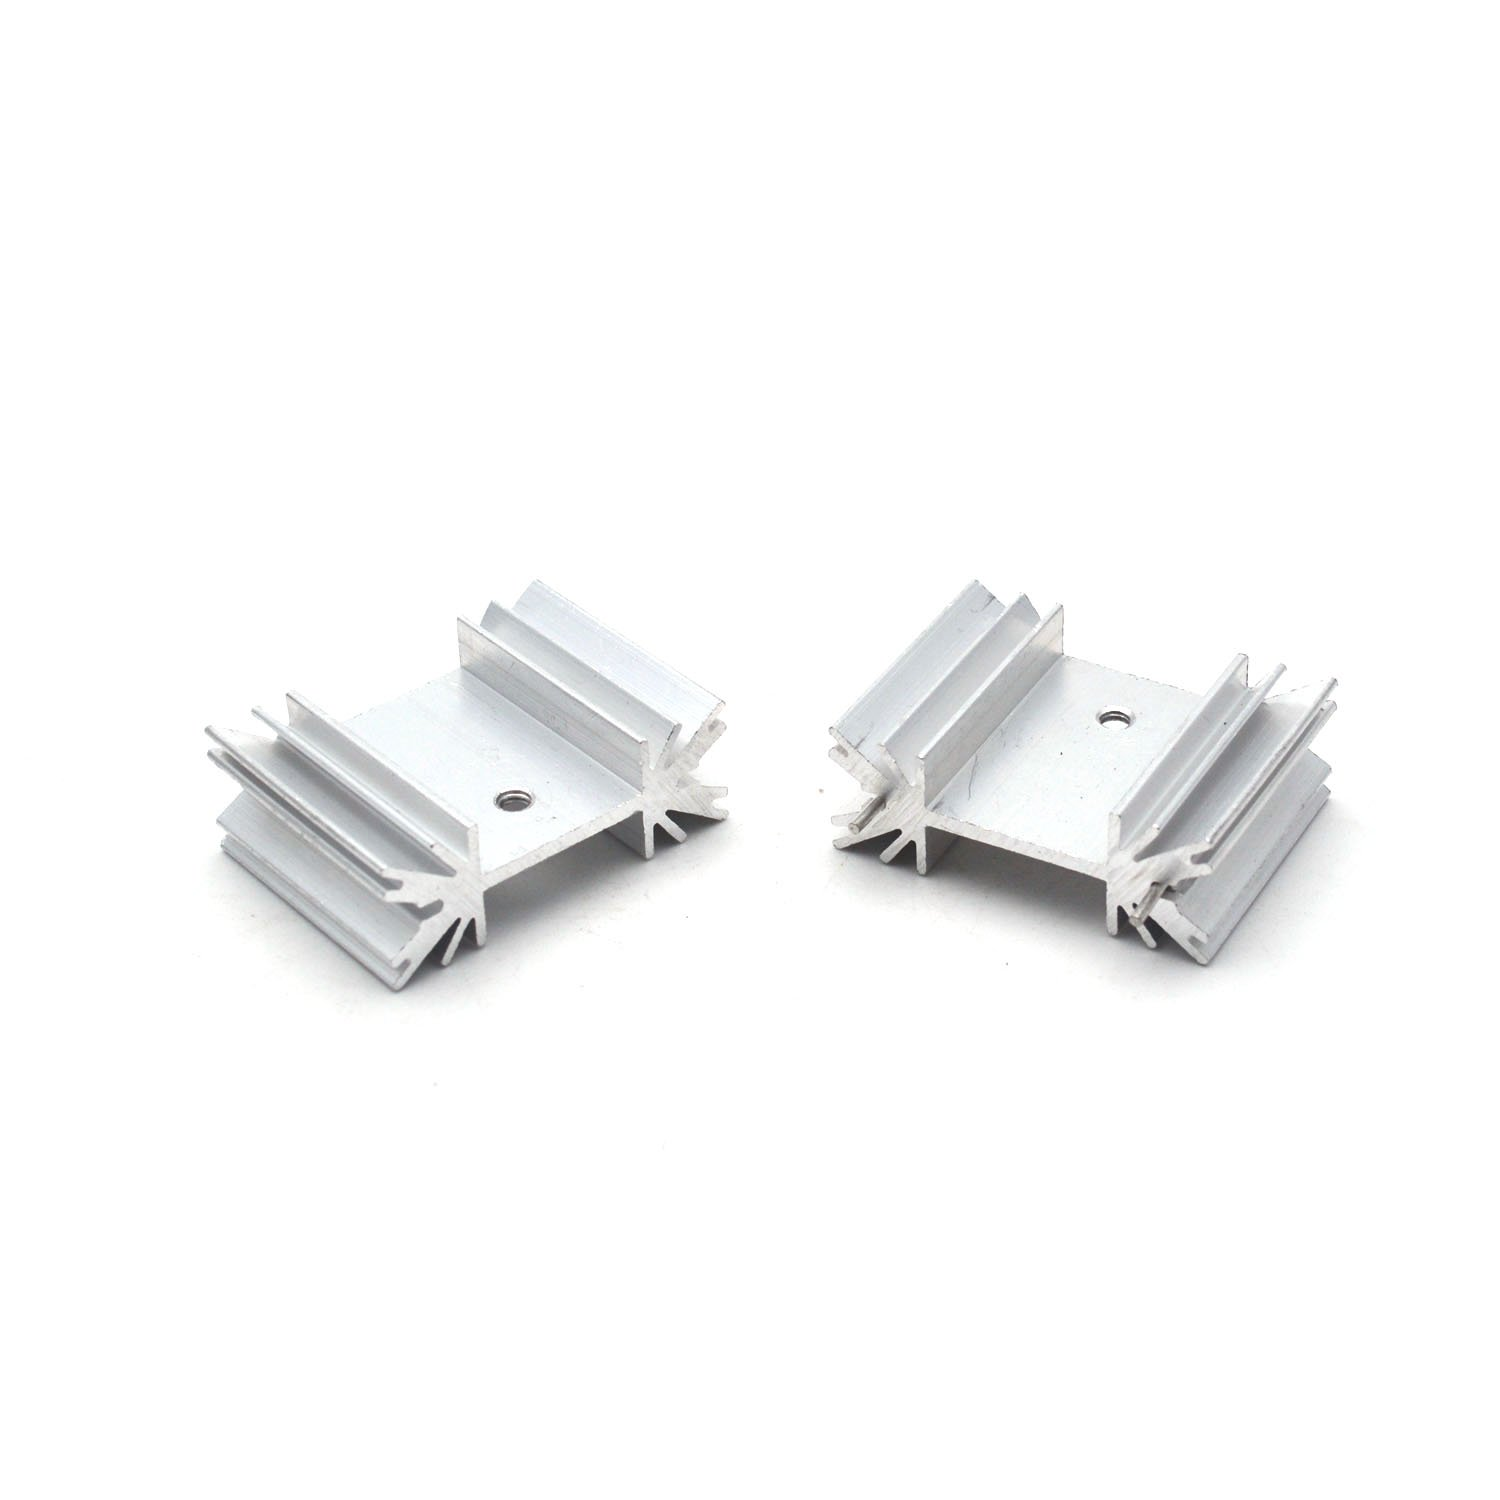 Antrader 12Pcs//Lot All Aluminum TO-3P 25 x 34 x 12mm Triode Heat Sink Aluminum Electronic Radiator for Transistor Cooler Guangzhou Openfind Electronic Commerce CO LTD